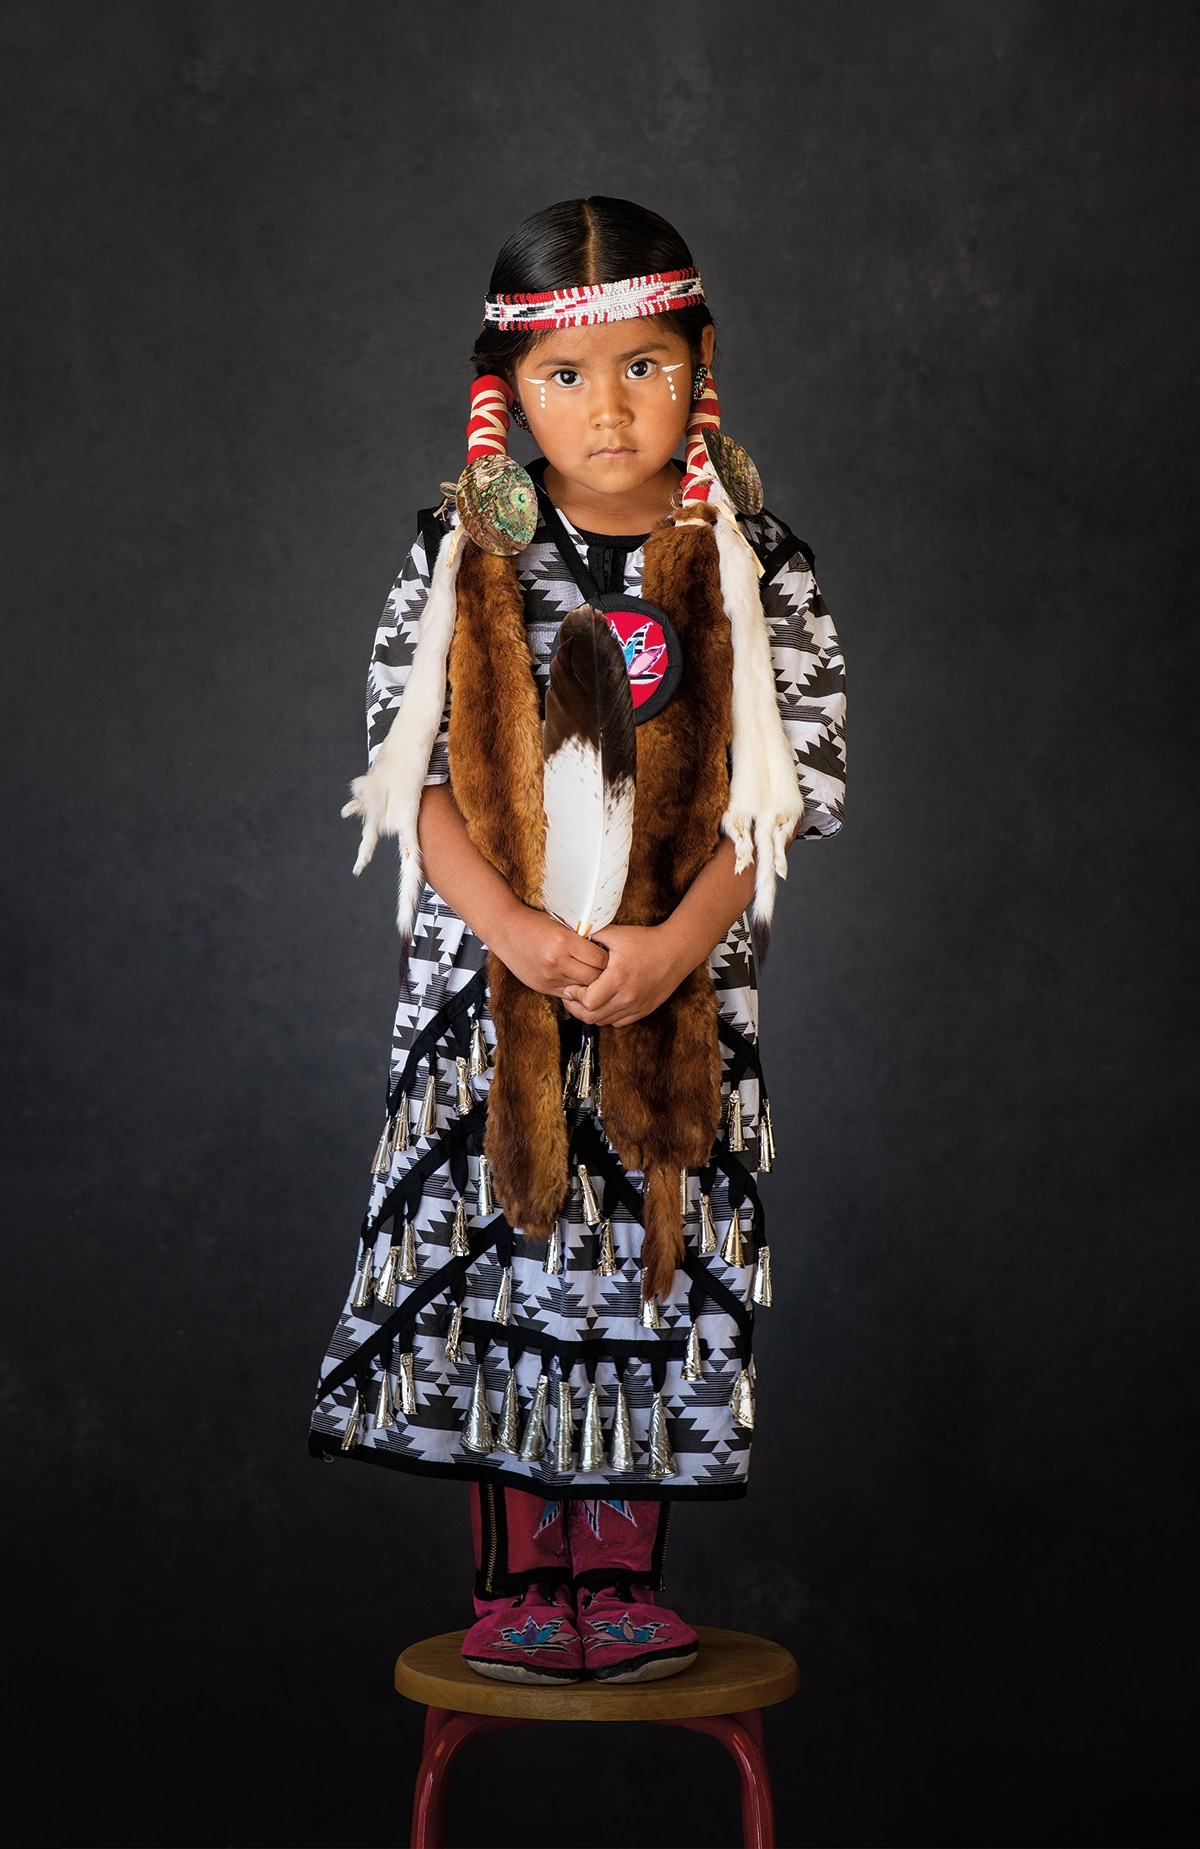 Portrait of Native American Girl by Craig Varjabedian